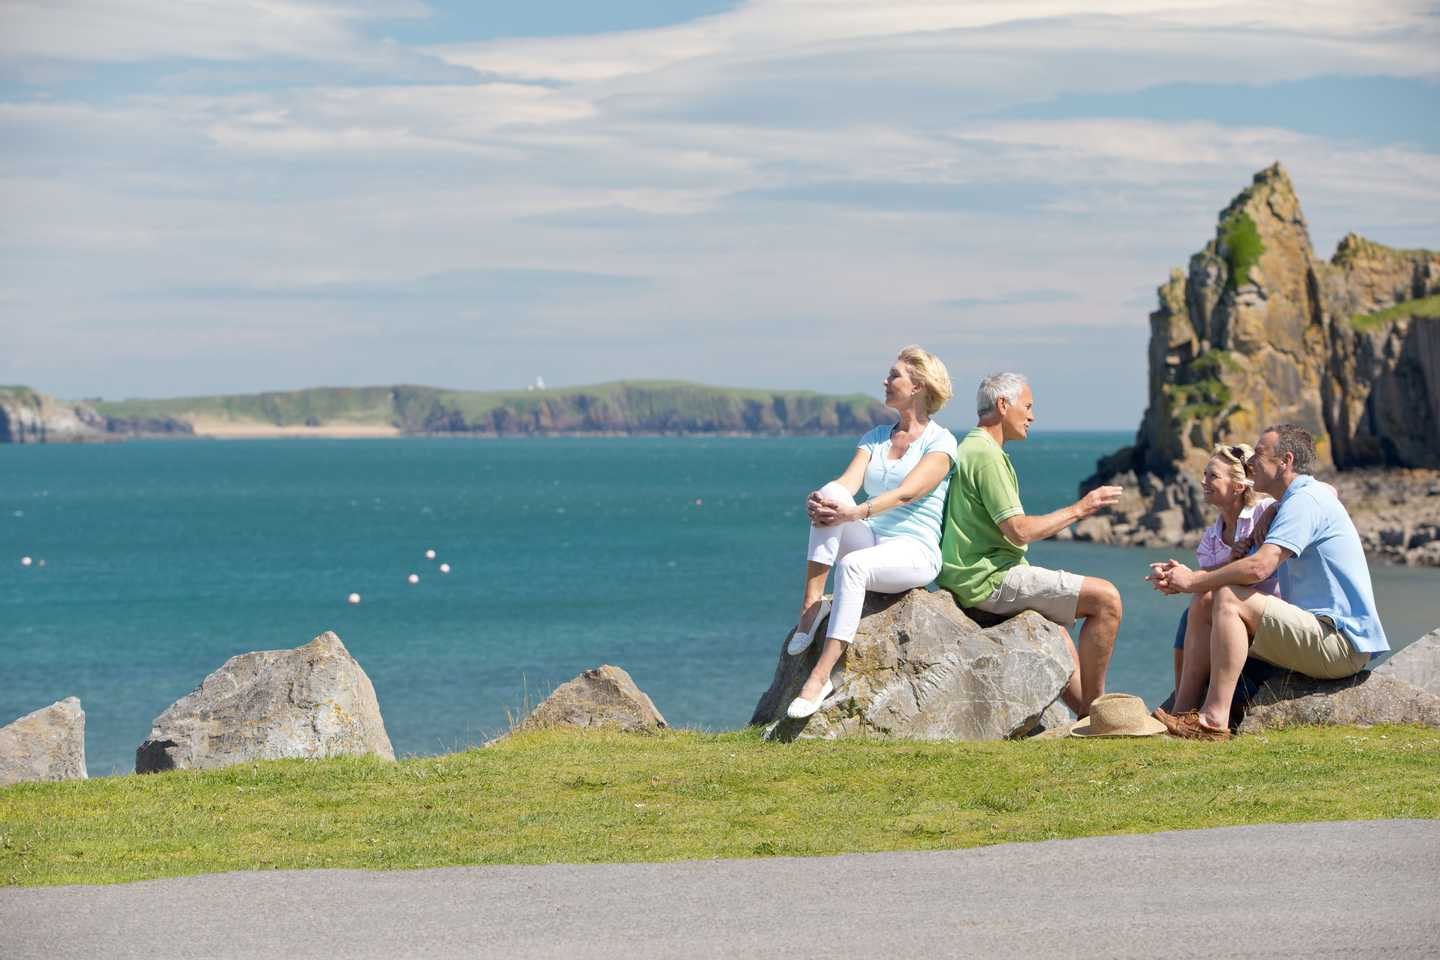 A group of friends perched on giant stones as they take in the scenic view across the sea in Tenby